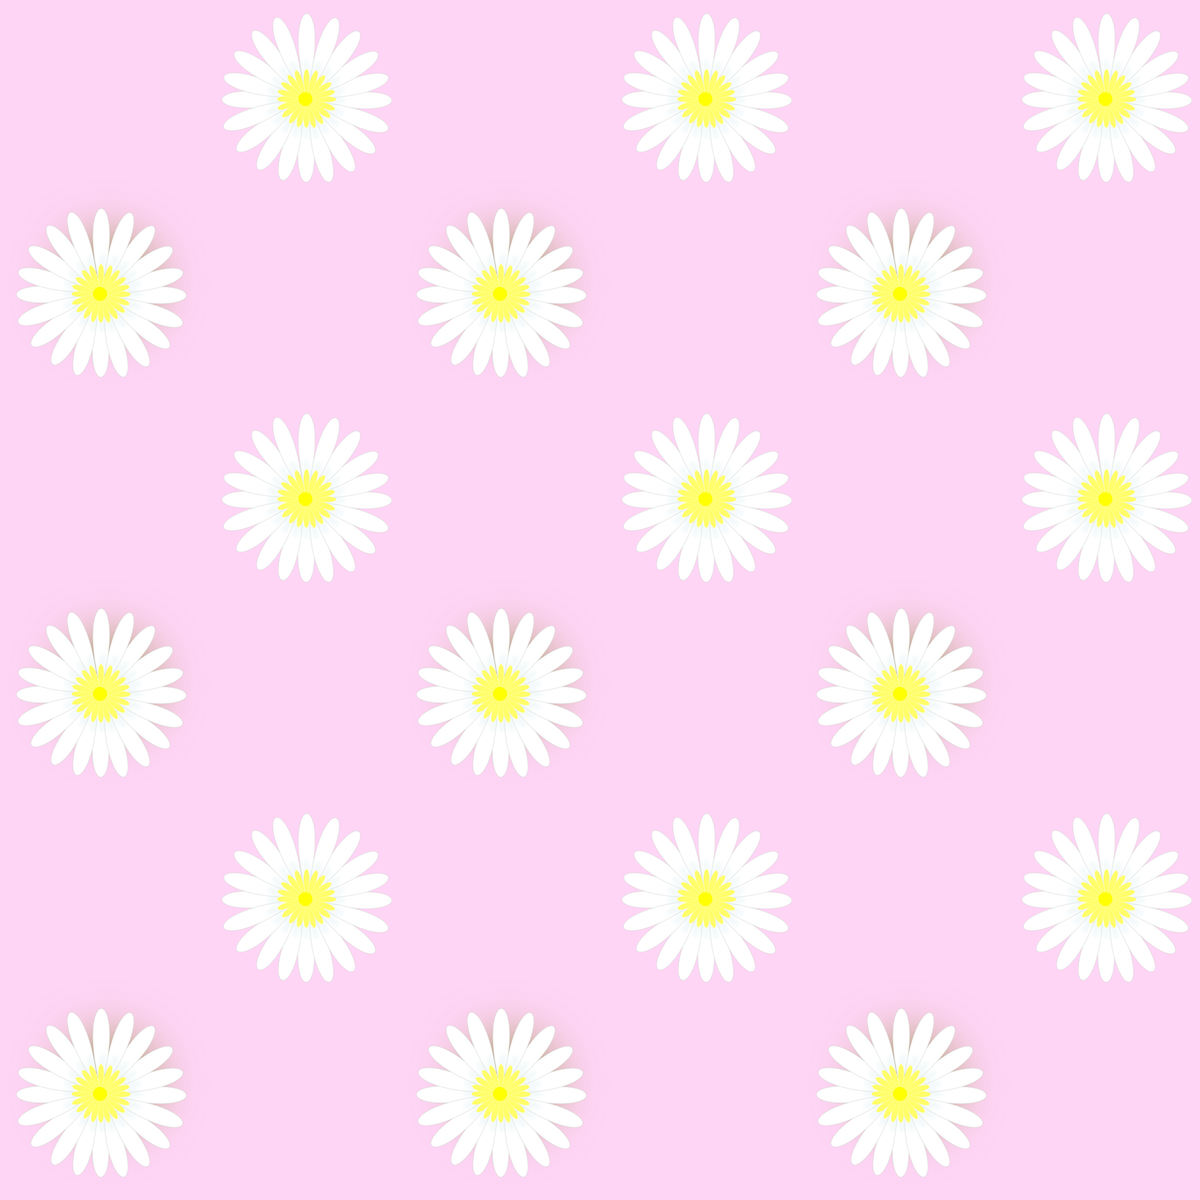 Daisy pattern wallpaper - photo#55